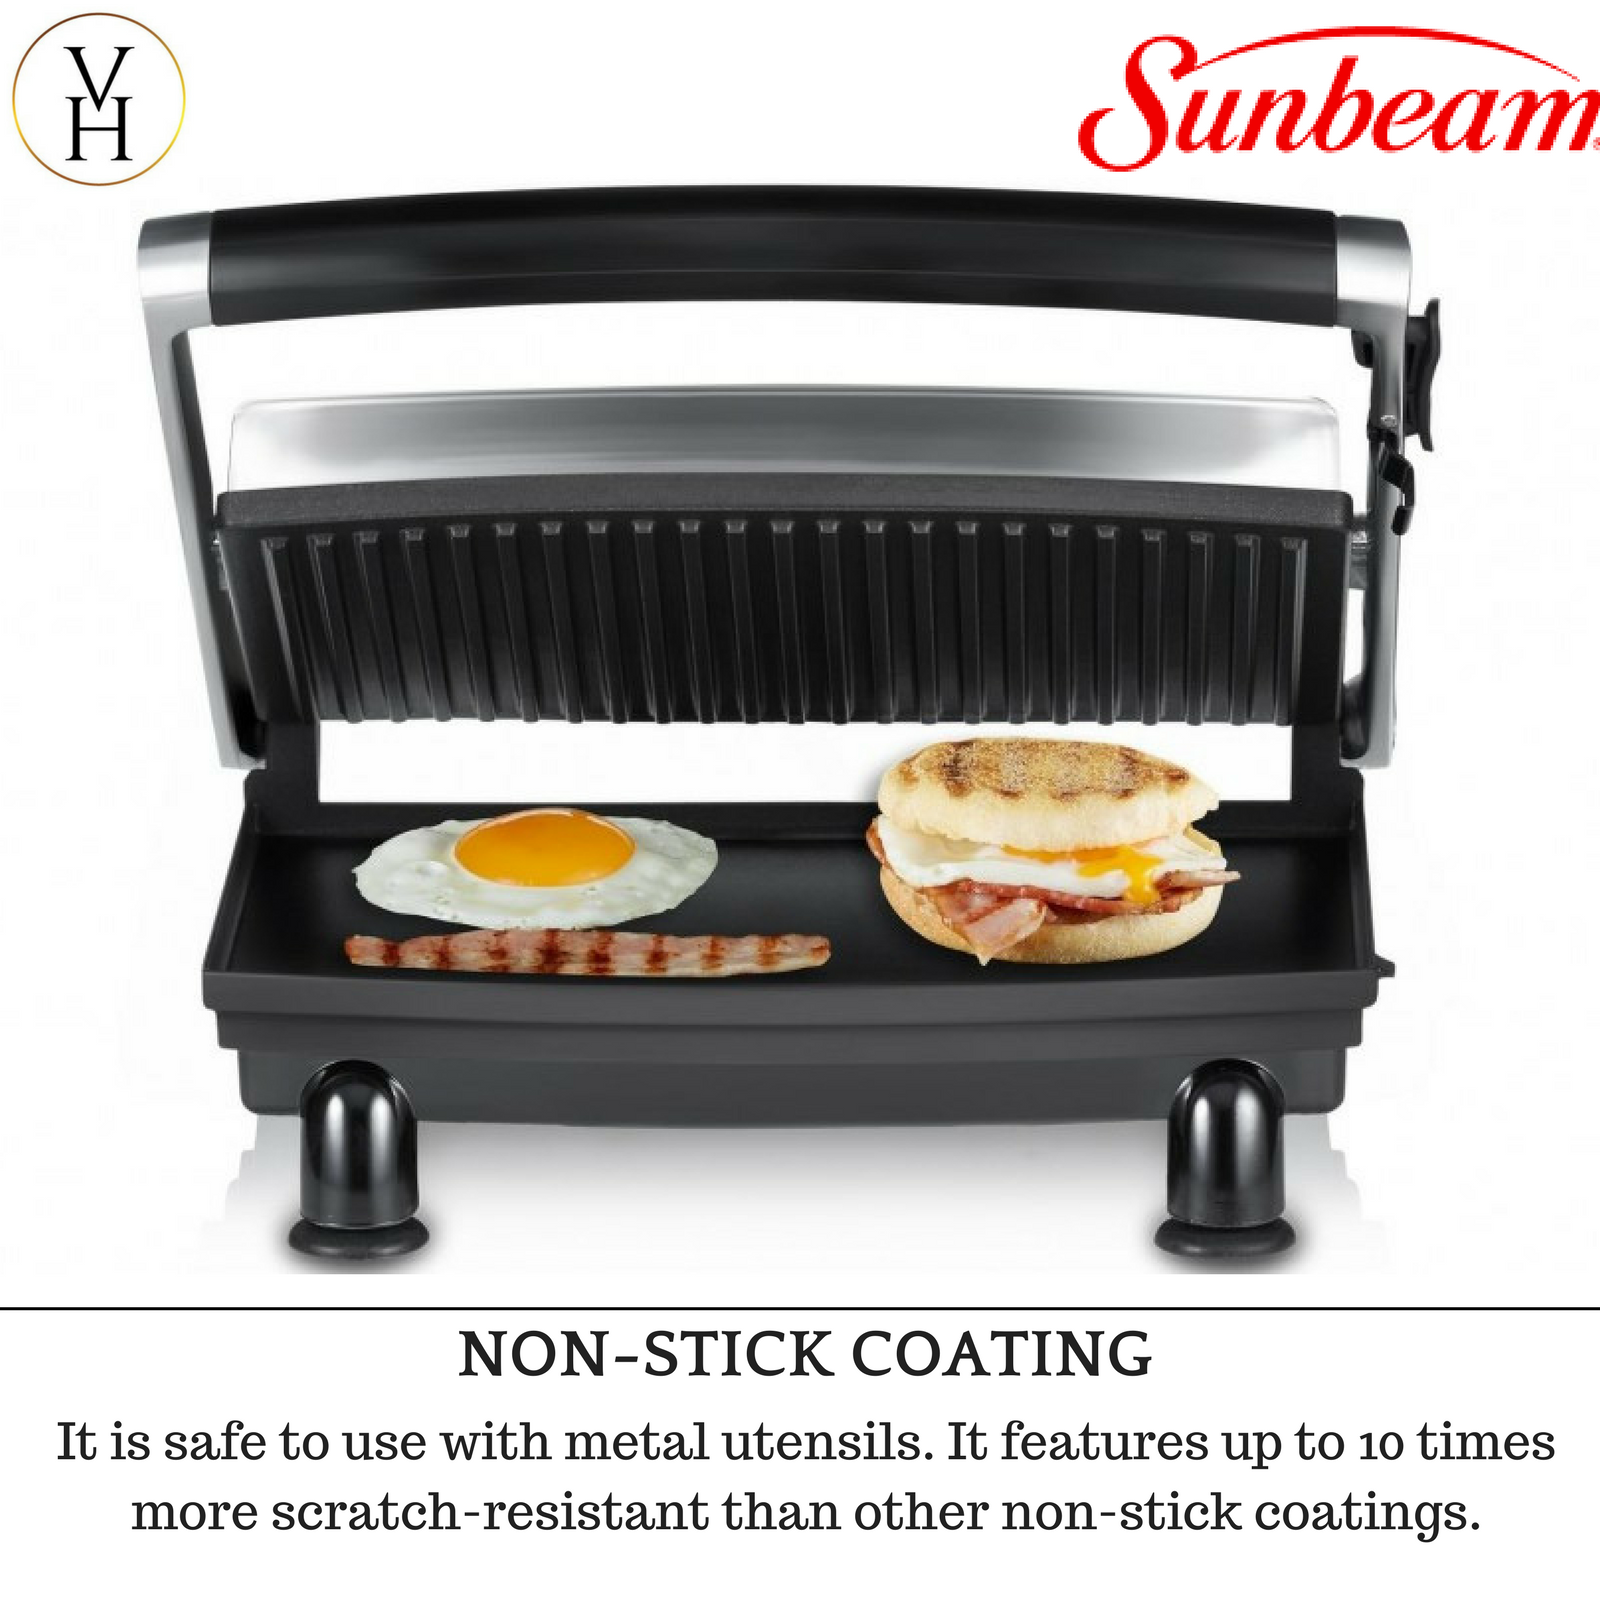 Sunbeam Grilled Sandwich Maker Toasted Cheese Toastie Toaster New Press Grill 9311445008119 Ebay